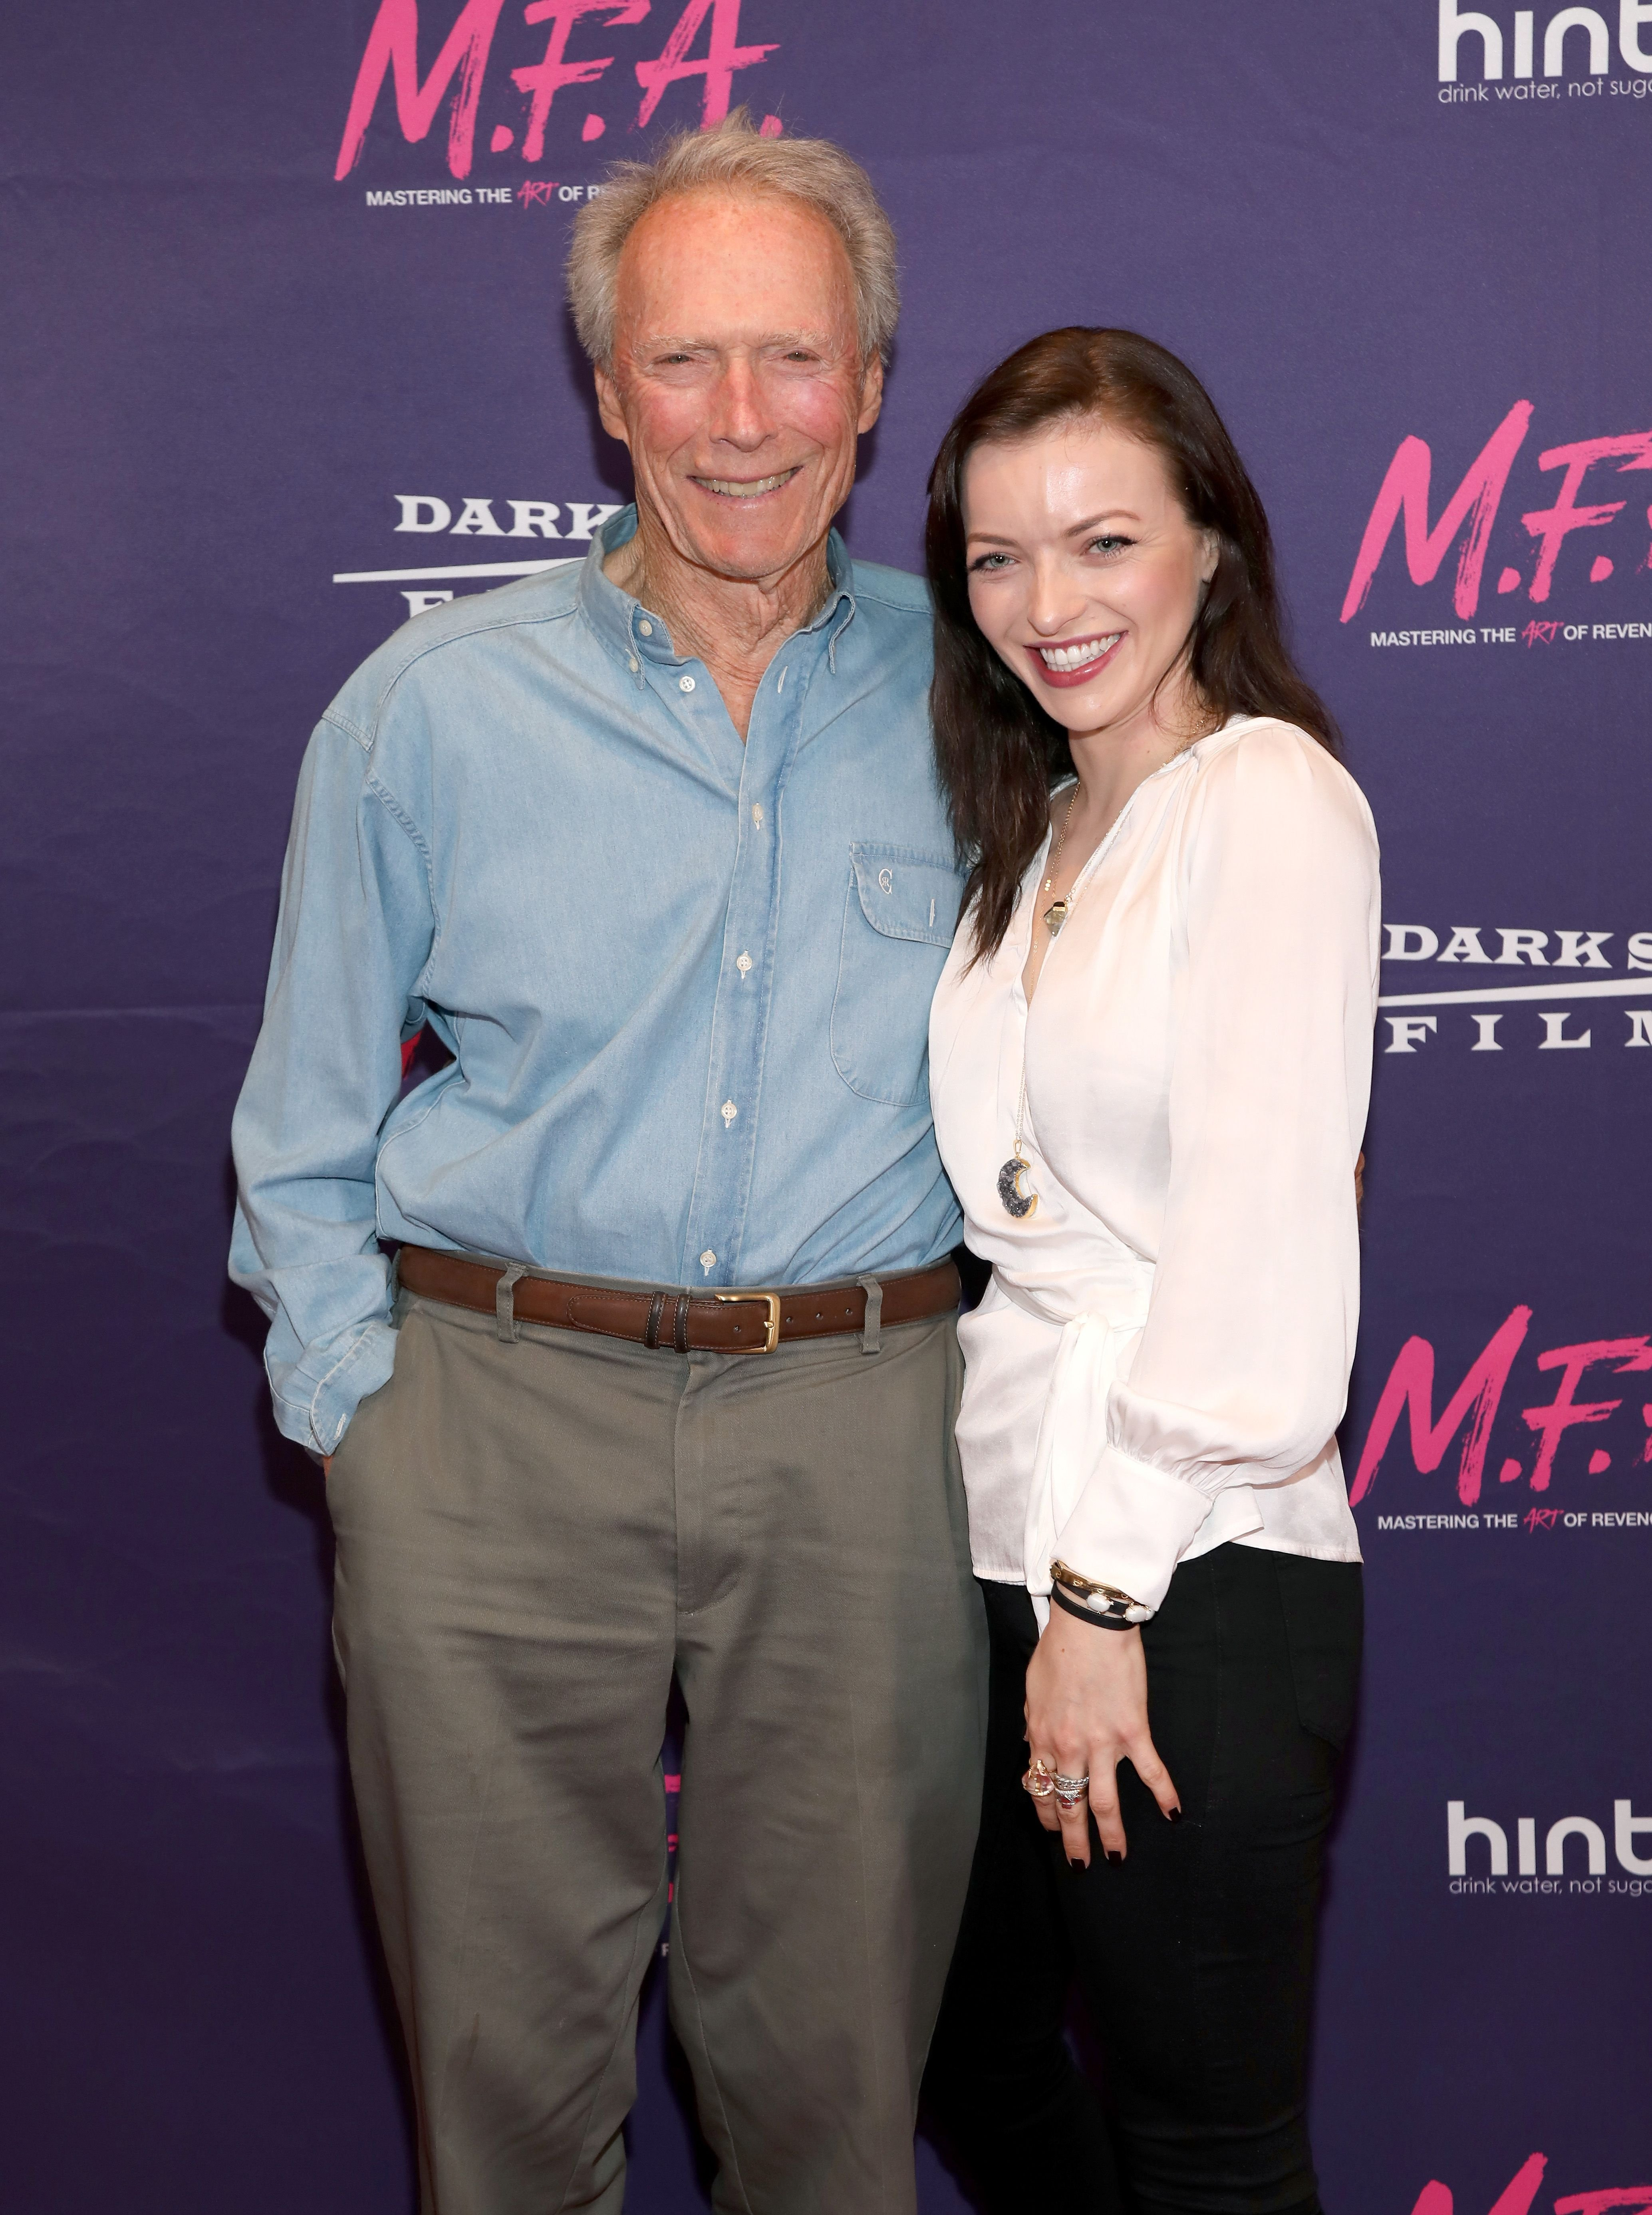 """Actor/Director Clint Eastwood poses with his daughter/actress Francesca Eastwood at the Premiere Of Dark Sky Films' """"M.F.A."""" at The London West Hollywood on October 2, 2017 